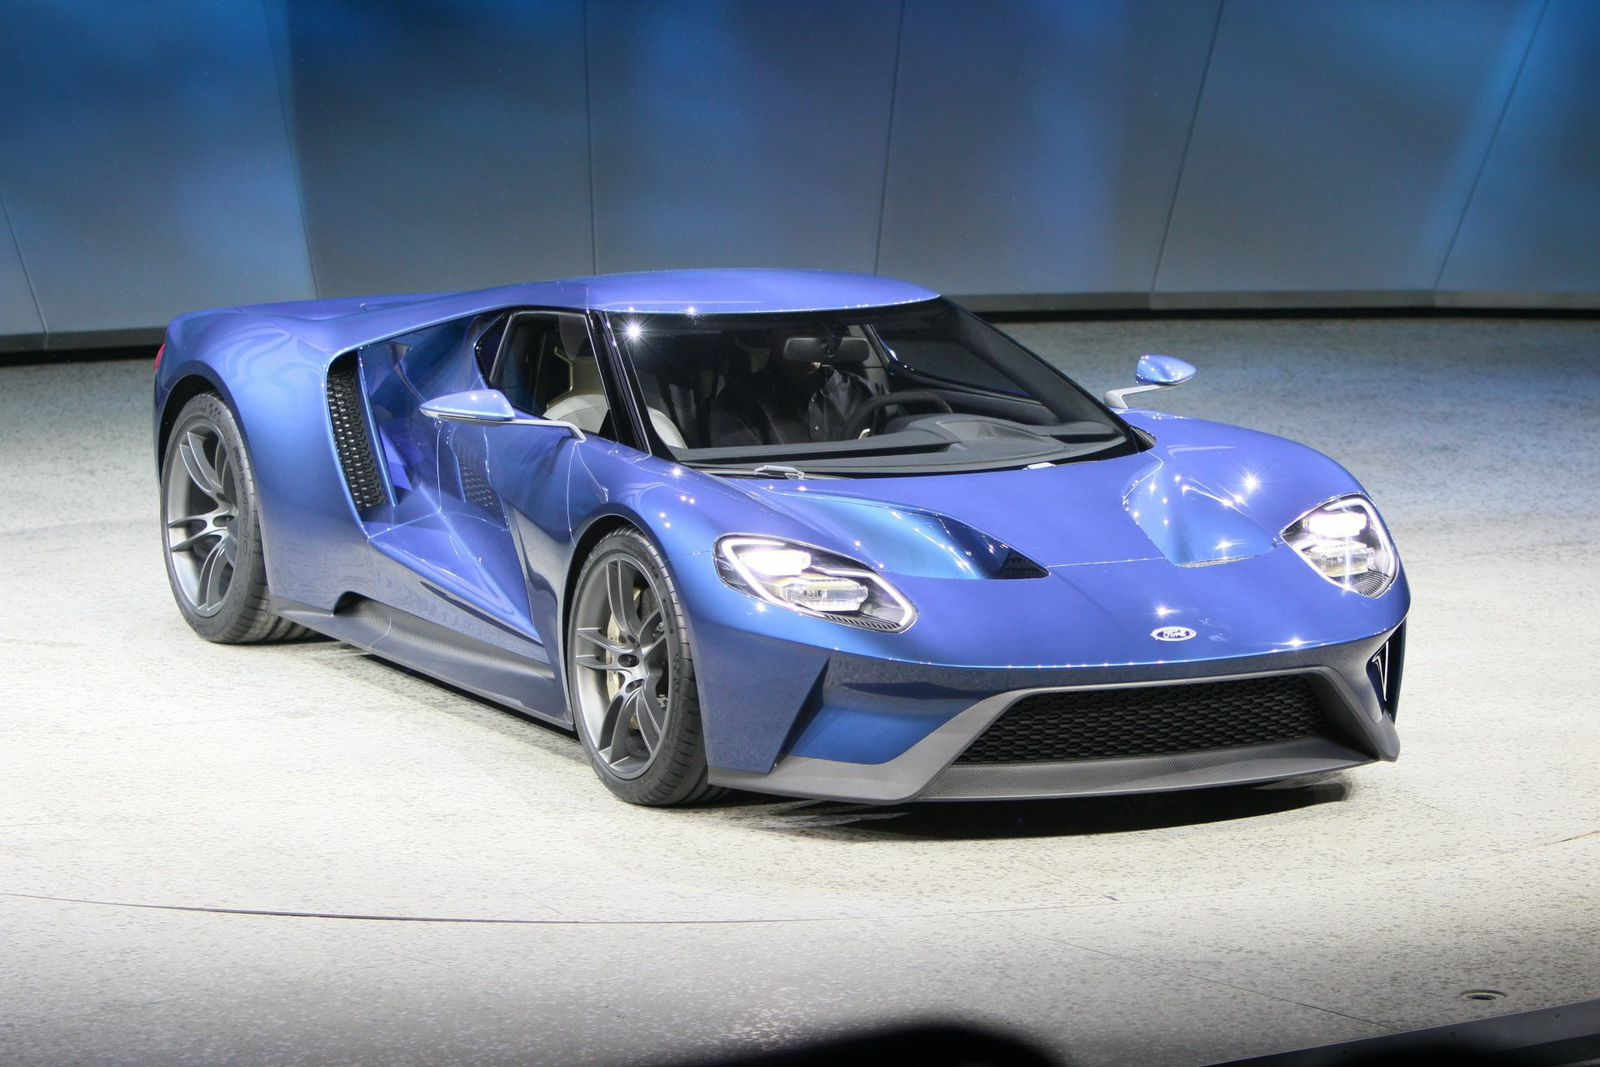 ford unveils 600 hp twin turbo ecoboost v6 gt supercar at detroit auto show onallcylinders. Black Bedroom Furniture Sets. Home Design Ideas